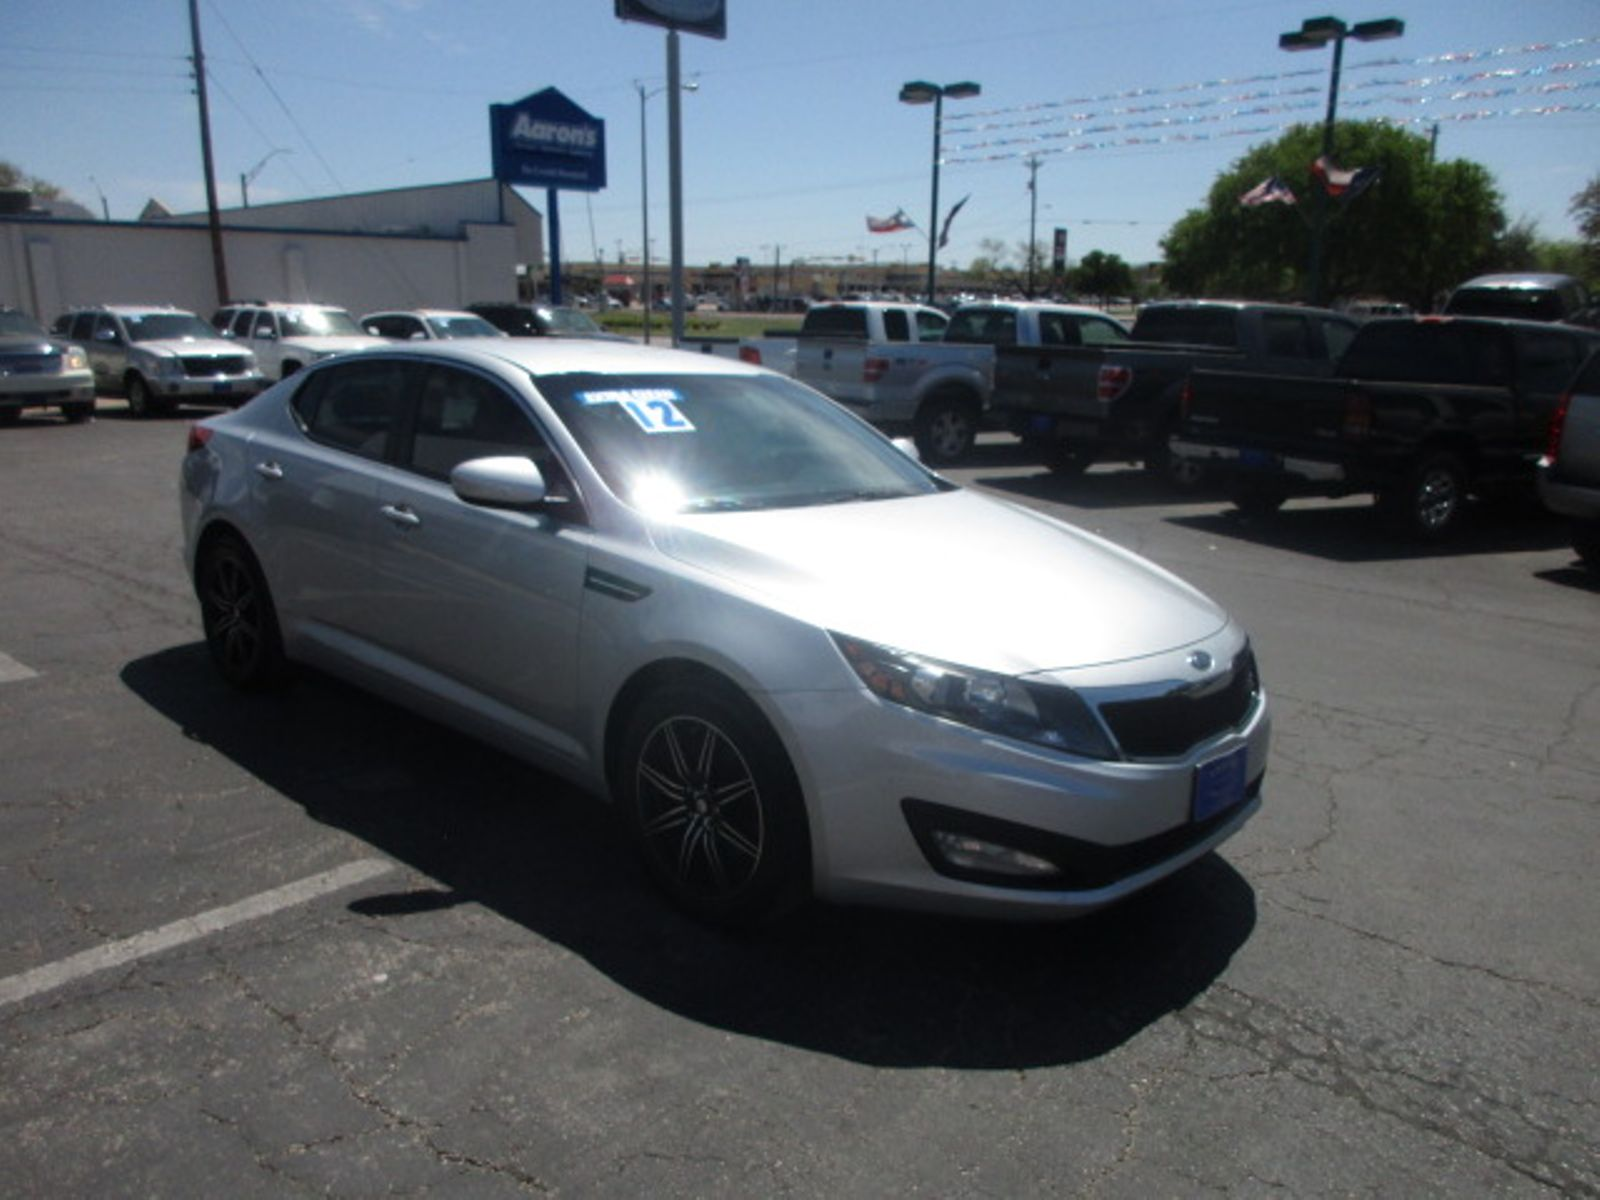 on bill kia optima en seattle auto online view left of lot sale copart wa in carfinder lx north auctions white